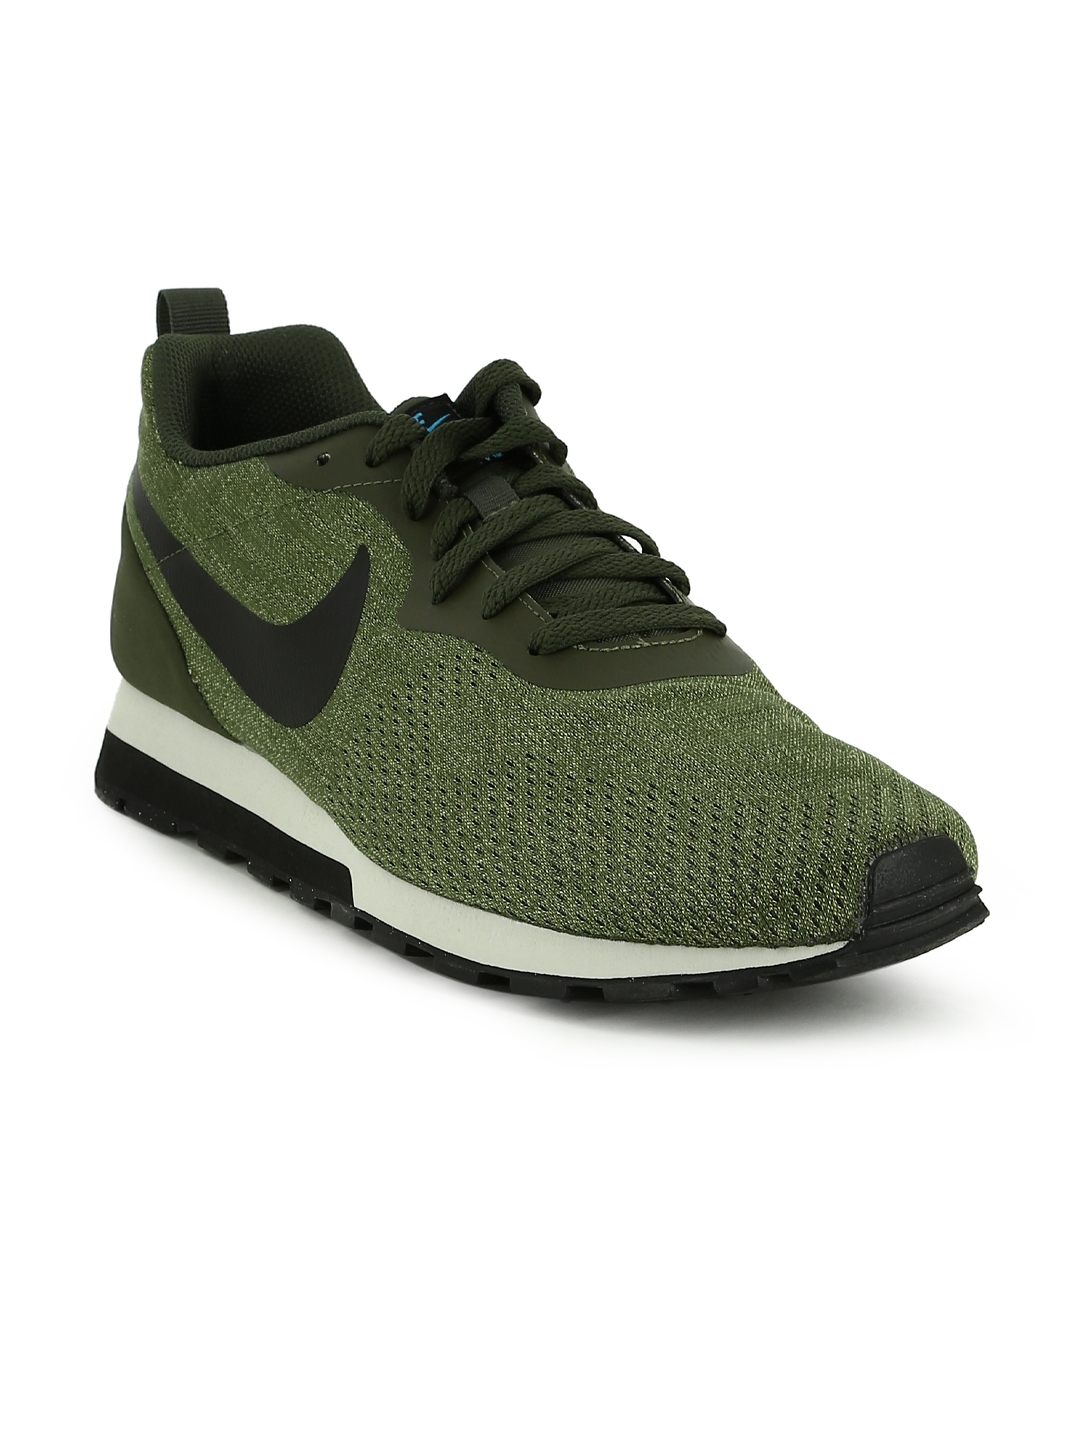 7837e304a2 Buy Nike Men Green MD RUNNER 2 ENG MESH Sneakers - Casual Shoes for ...